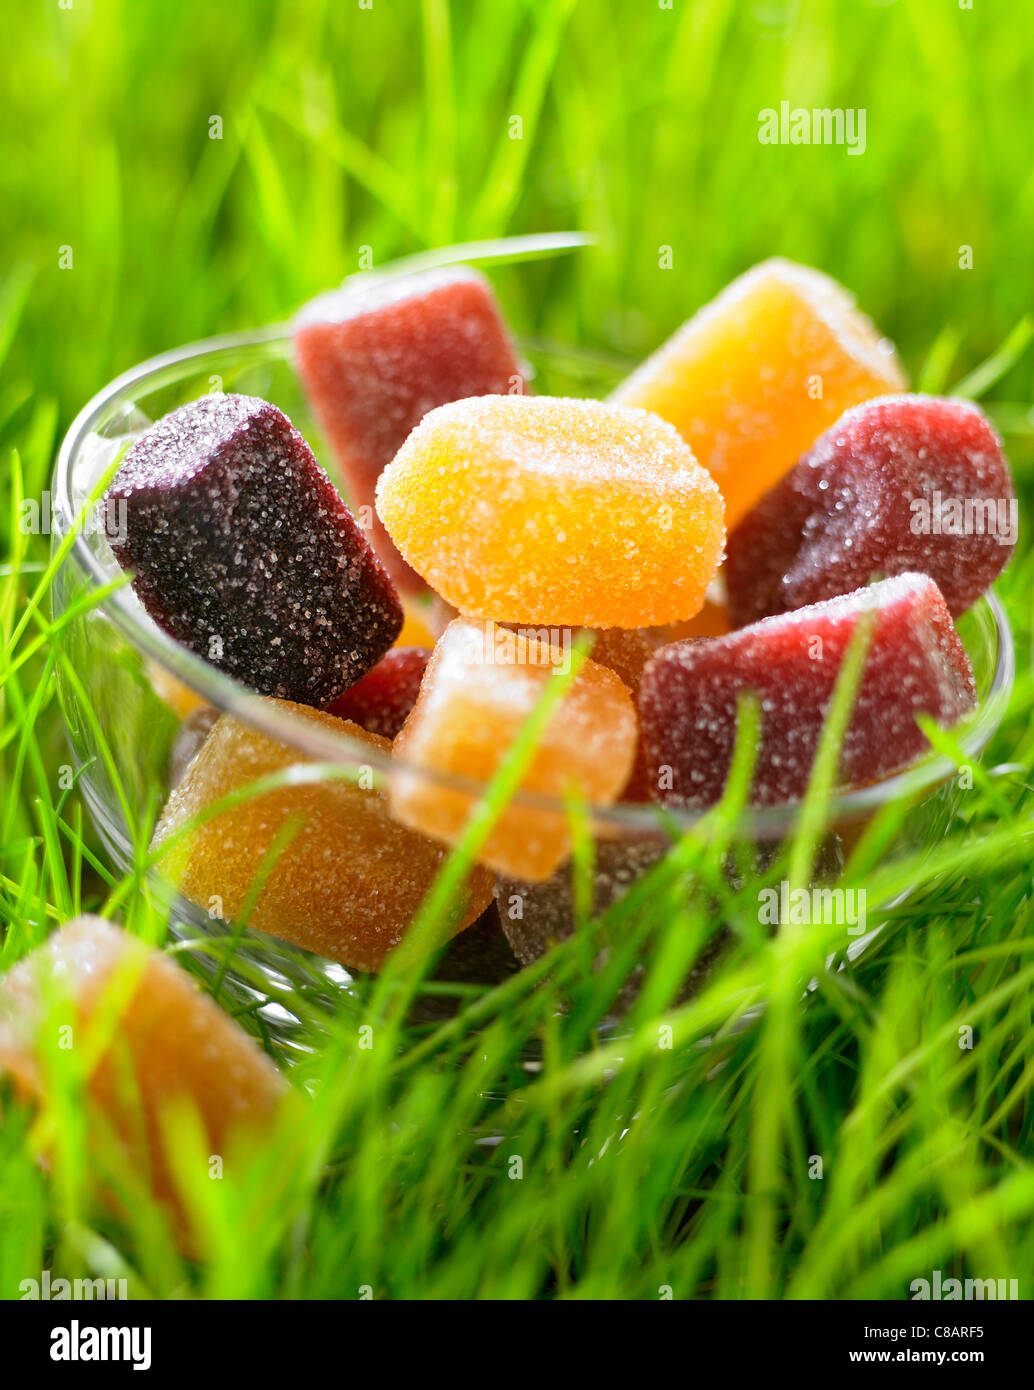 Bowl of fruit pastes on the grass - Stock Image